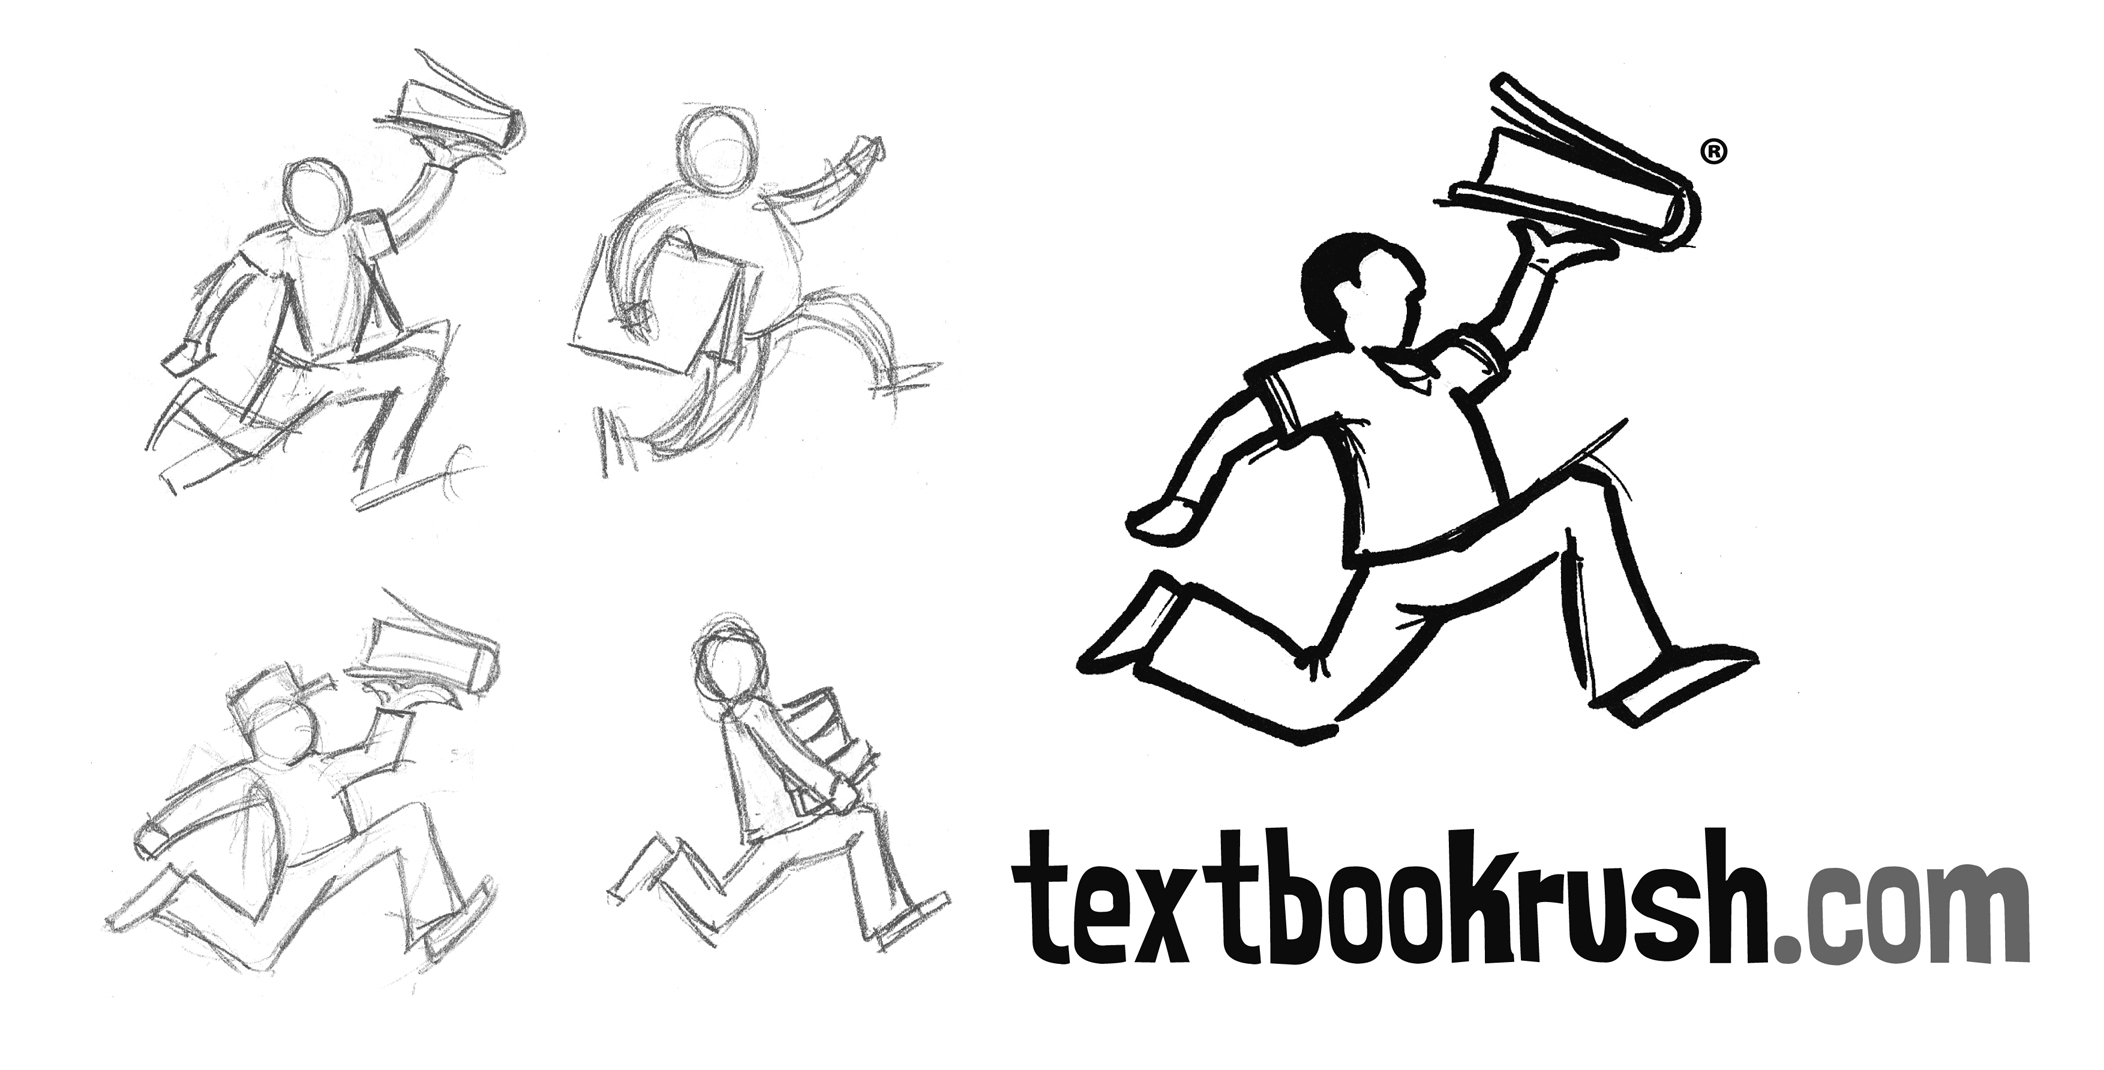 textbookrush-stage1-1